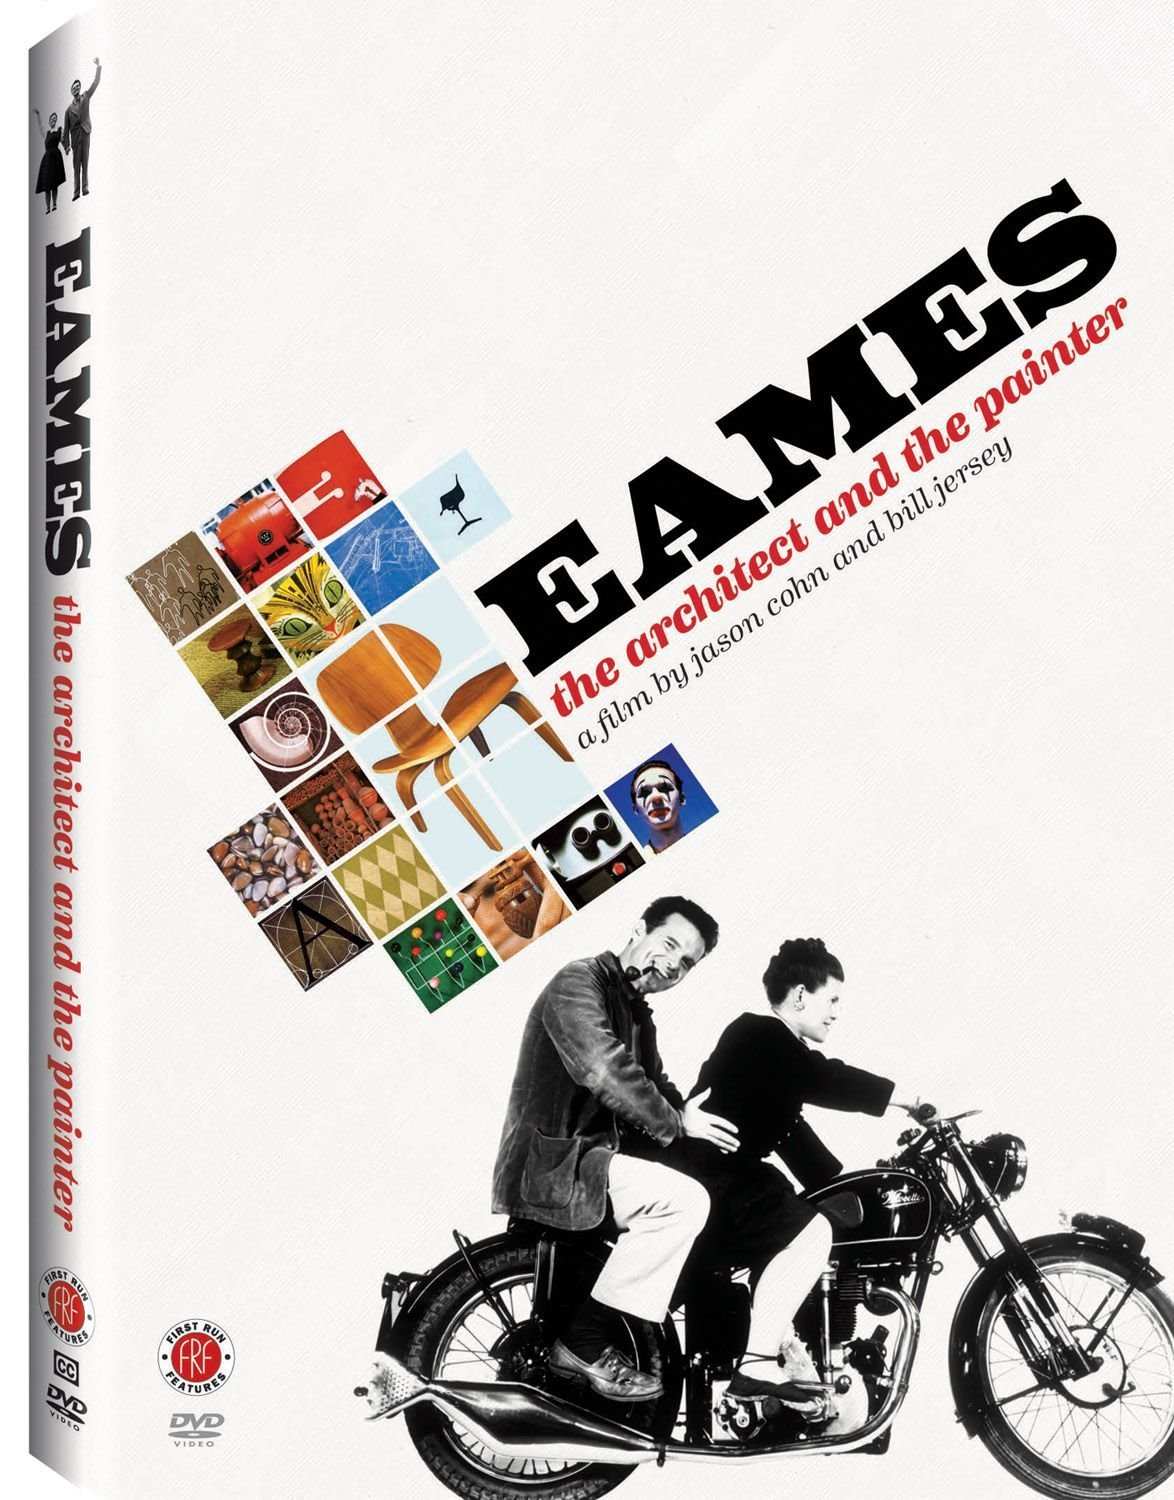 A DVD cover with a black and white photo of Charles and Ray Eames riding a motorcycle. The title text is set diagonally next to thumbnail images of the Eames' products.